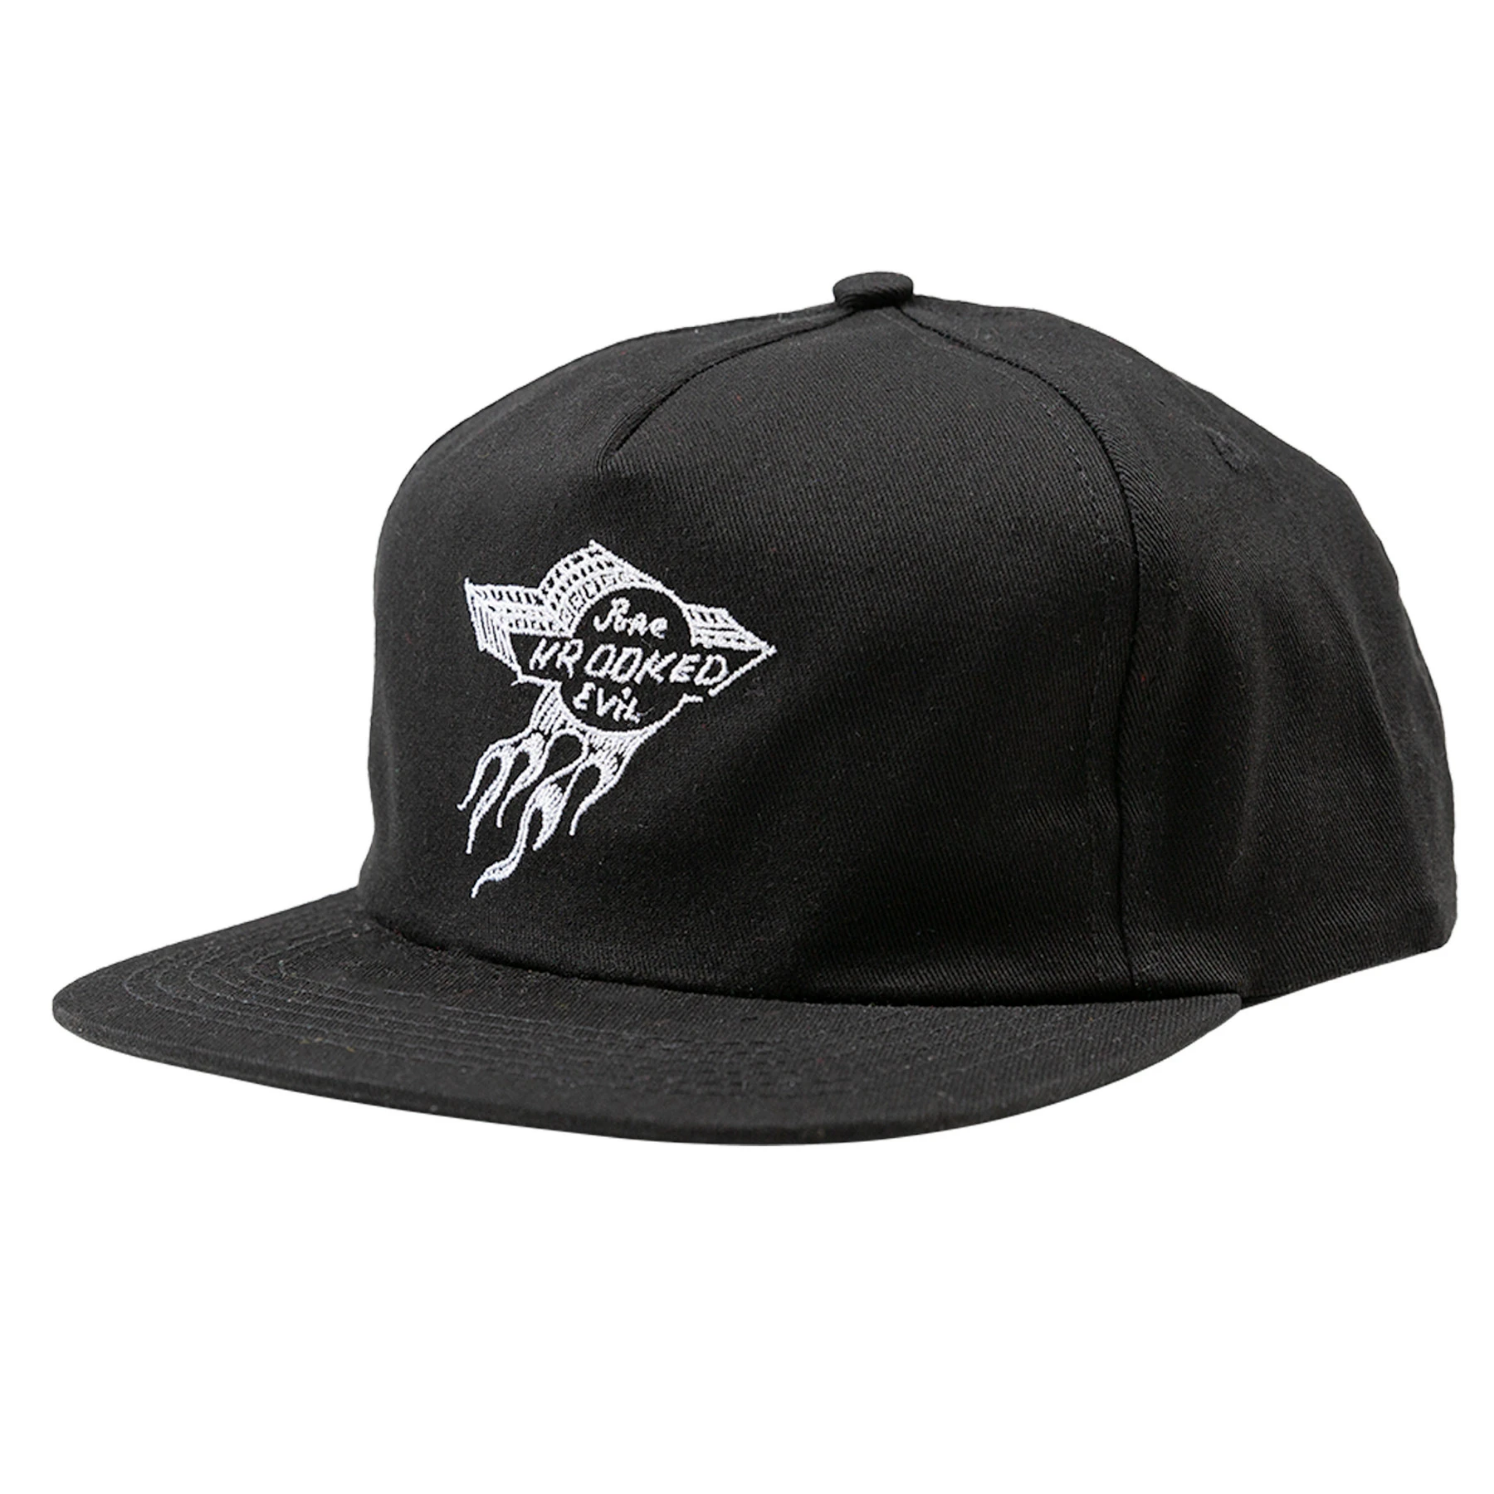 Krooked Pure Evil Black Snapback